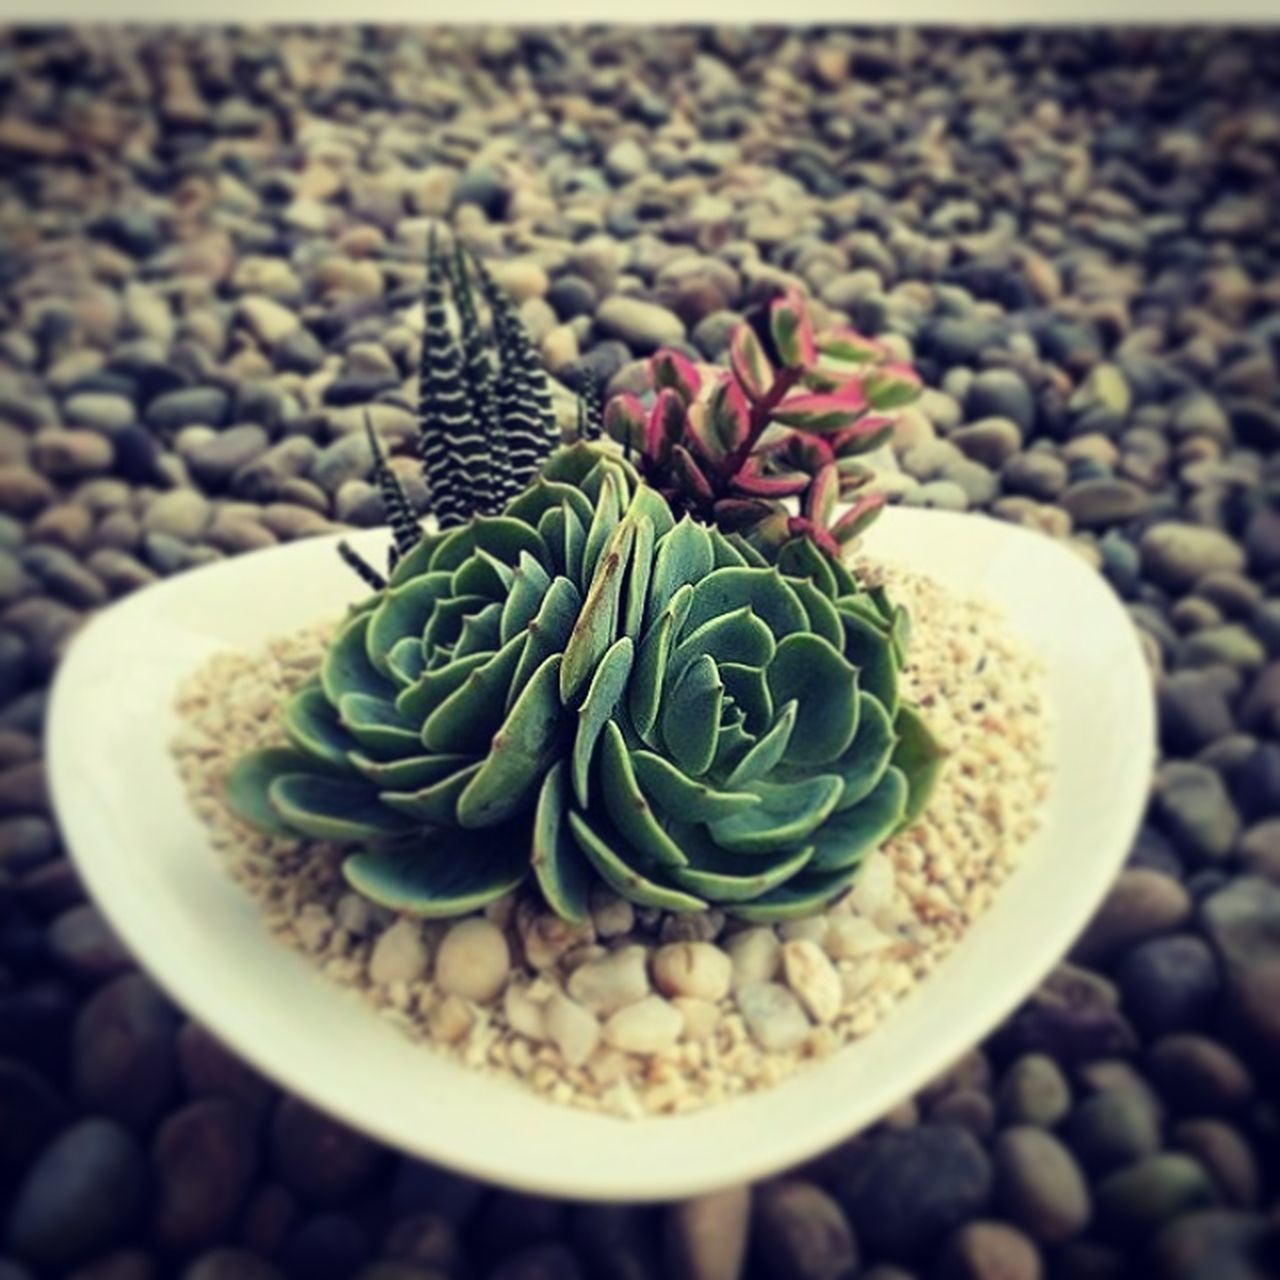 green color, pebble, cactus, close-up, freshness, nature, no people, day, growth, food, indoors, healthy eating, beauty in nature